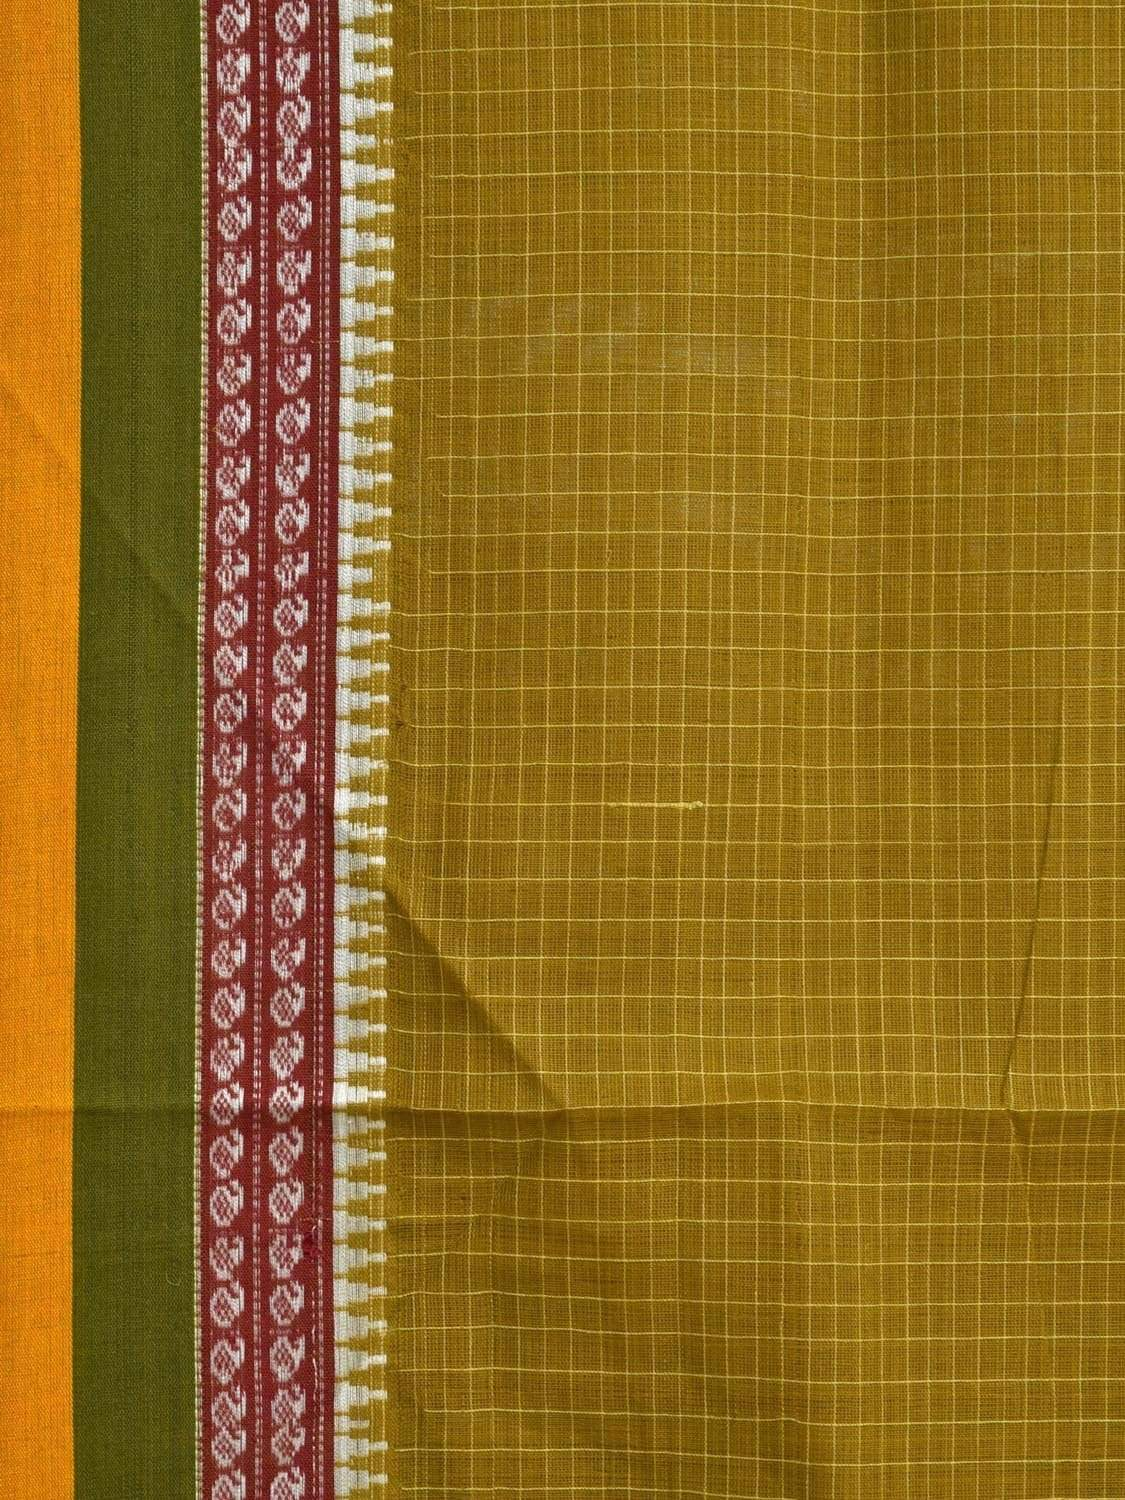 Olive Narayanpet Cotton Handloom Saree with Checks and Border Design No Blouse np0249